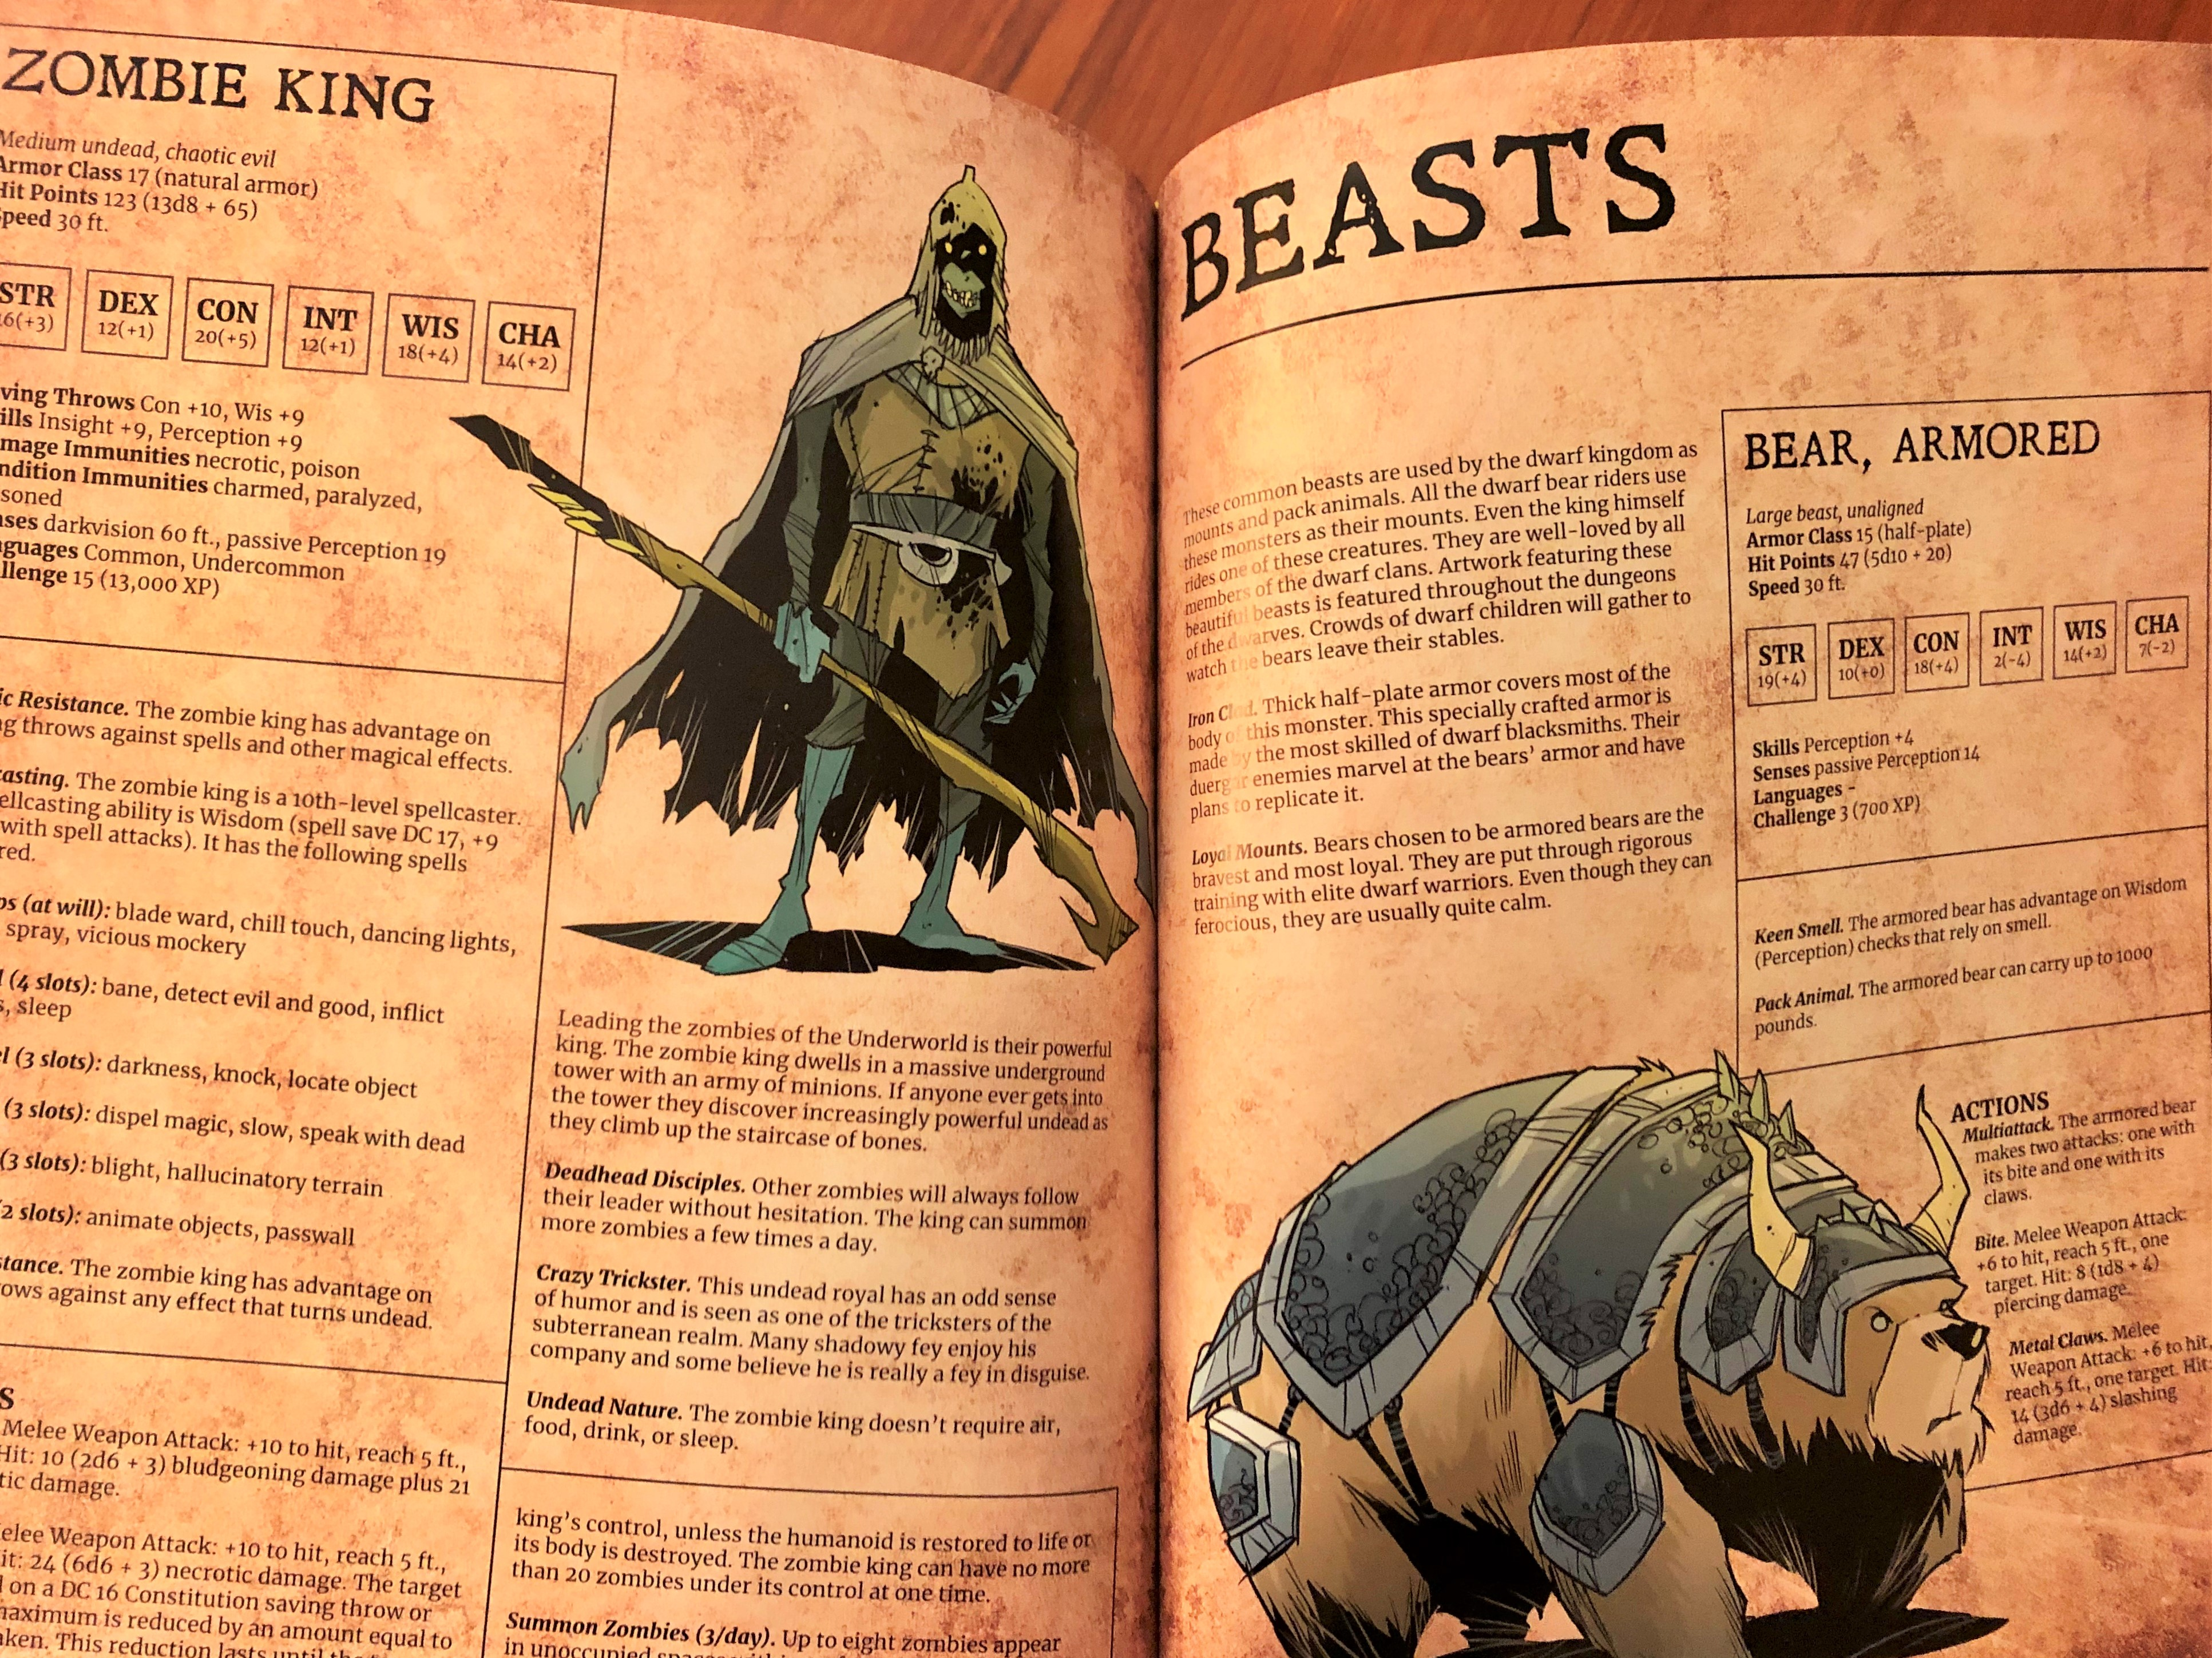 Discover Over 100 New 5e Creatures In Monsters Of The Underworld Holiday Sale And Available At Drivethrurpg Rpg Products For 5th Edition Creatures cannot be found by this spell. discover over 100 new 5e creatures in